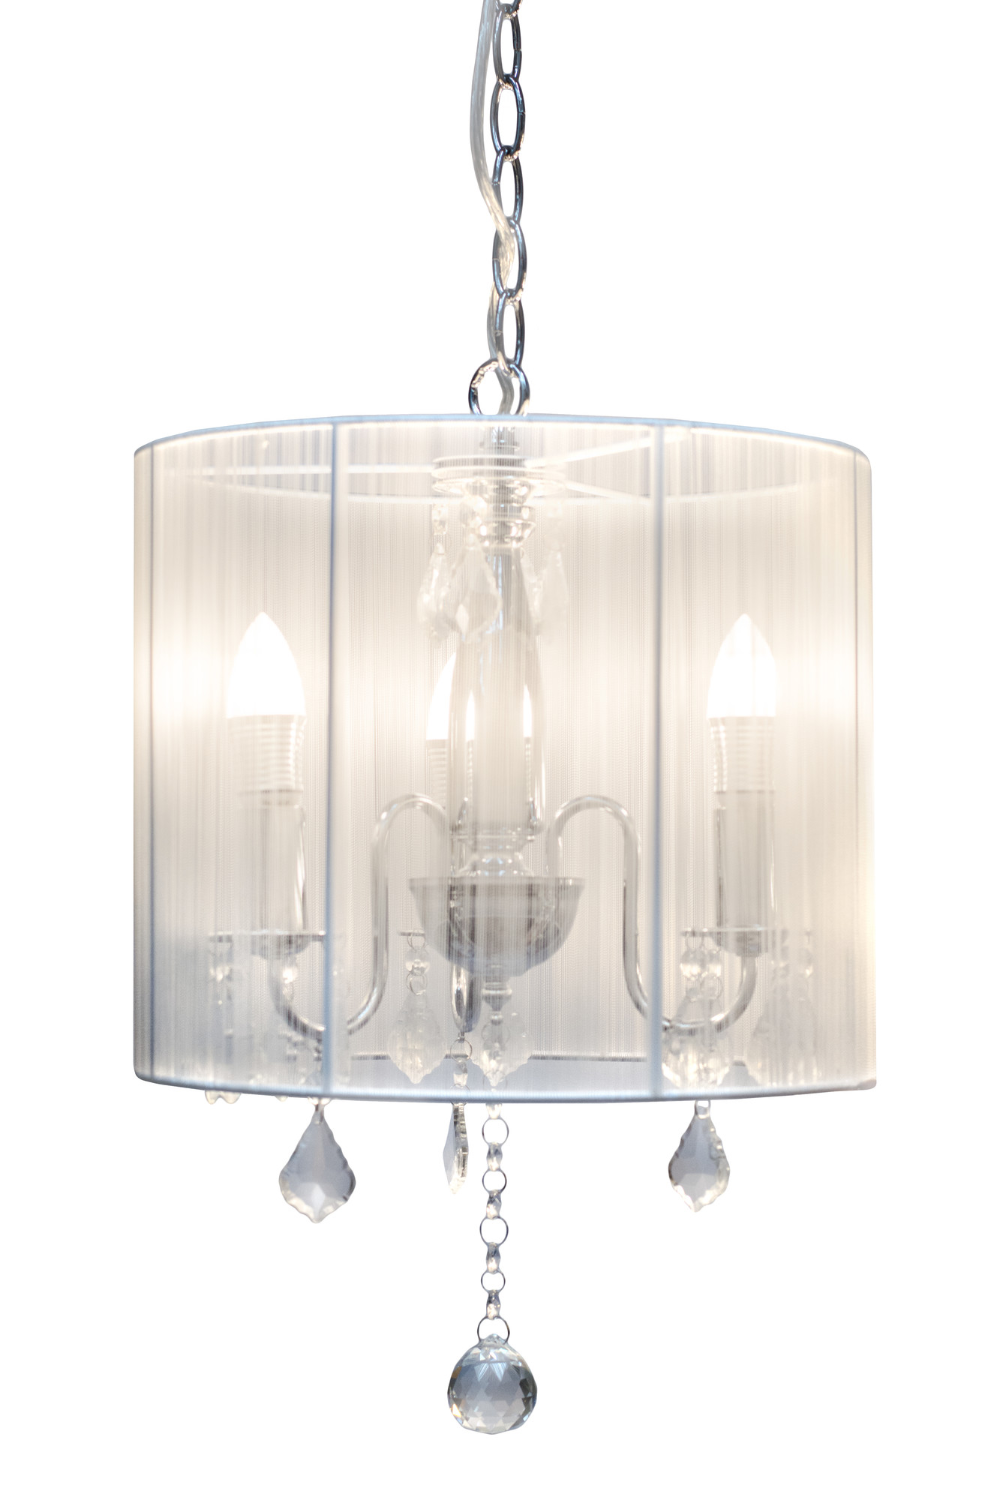 Paris 3 Lights Chandelier White Shade In 2020 White Chandelier